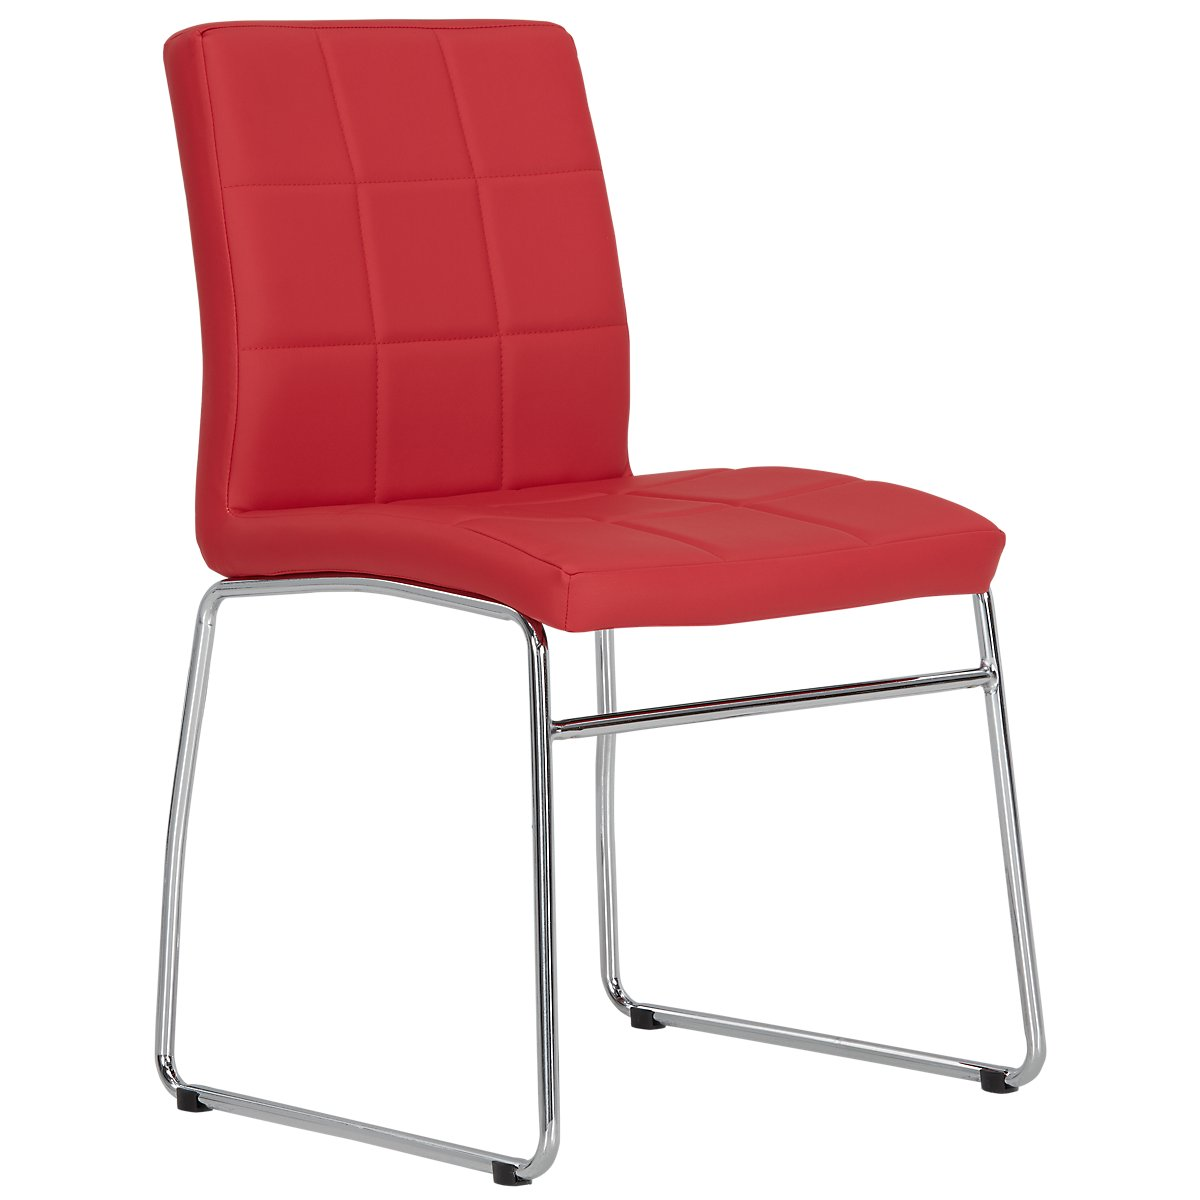 Caleb Red Upholstered Side Chair